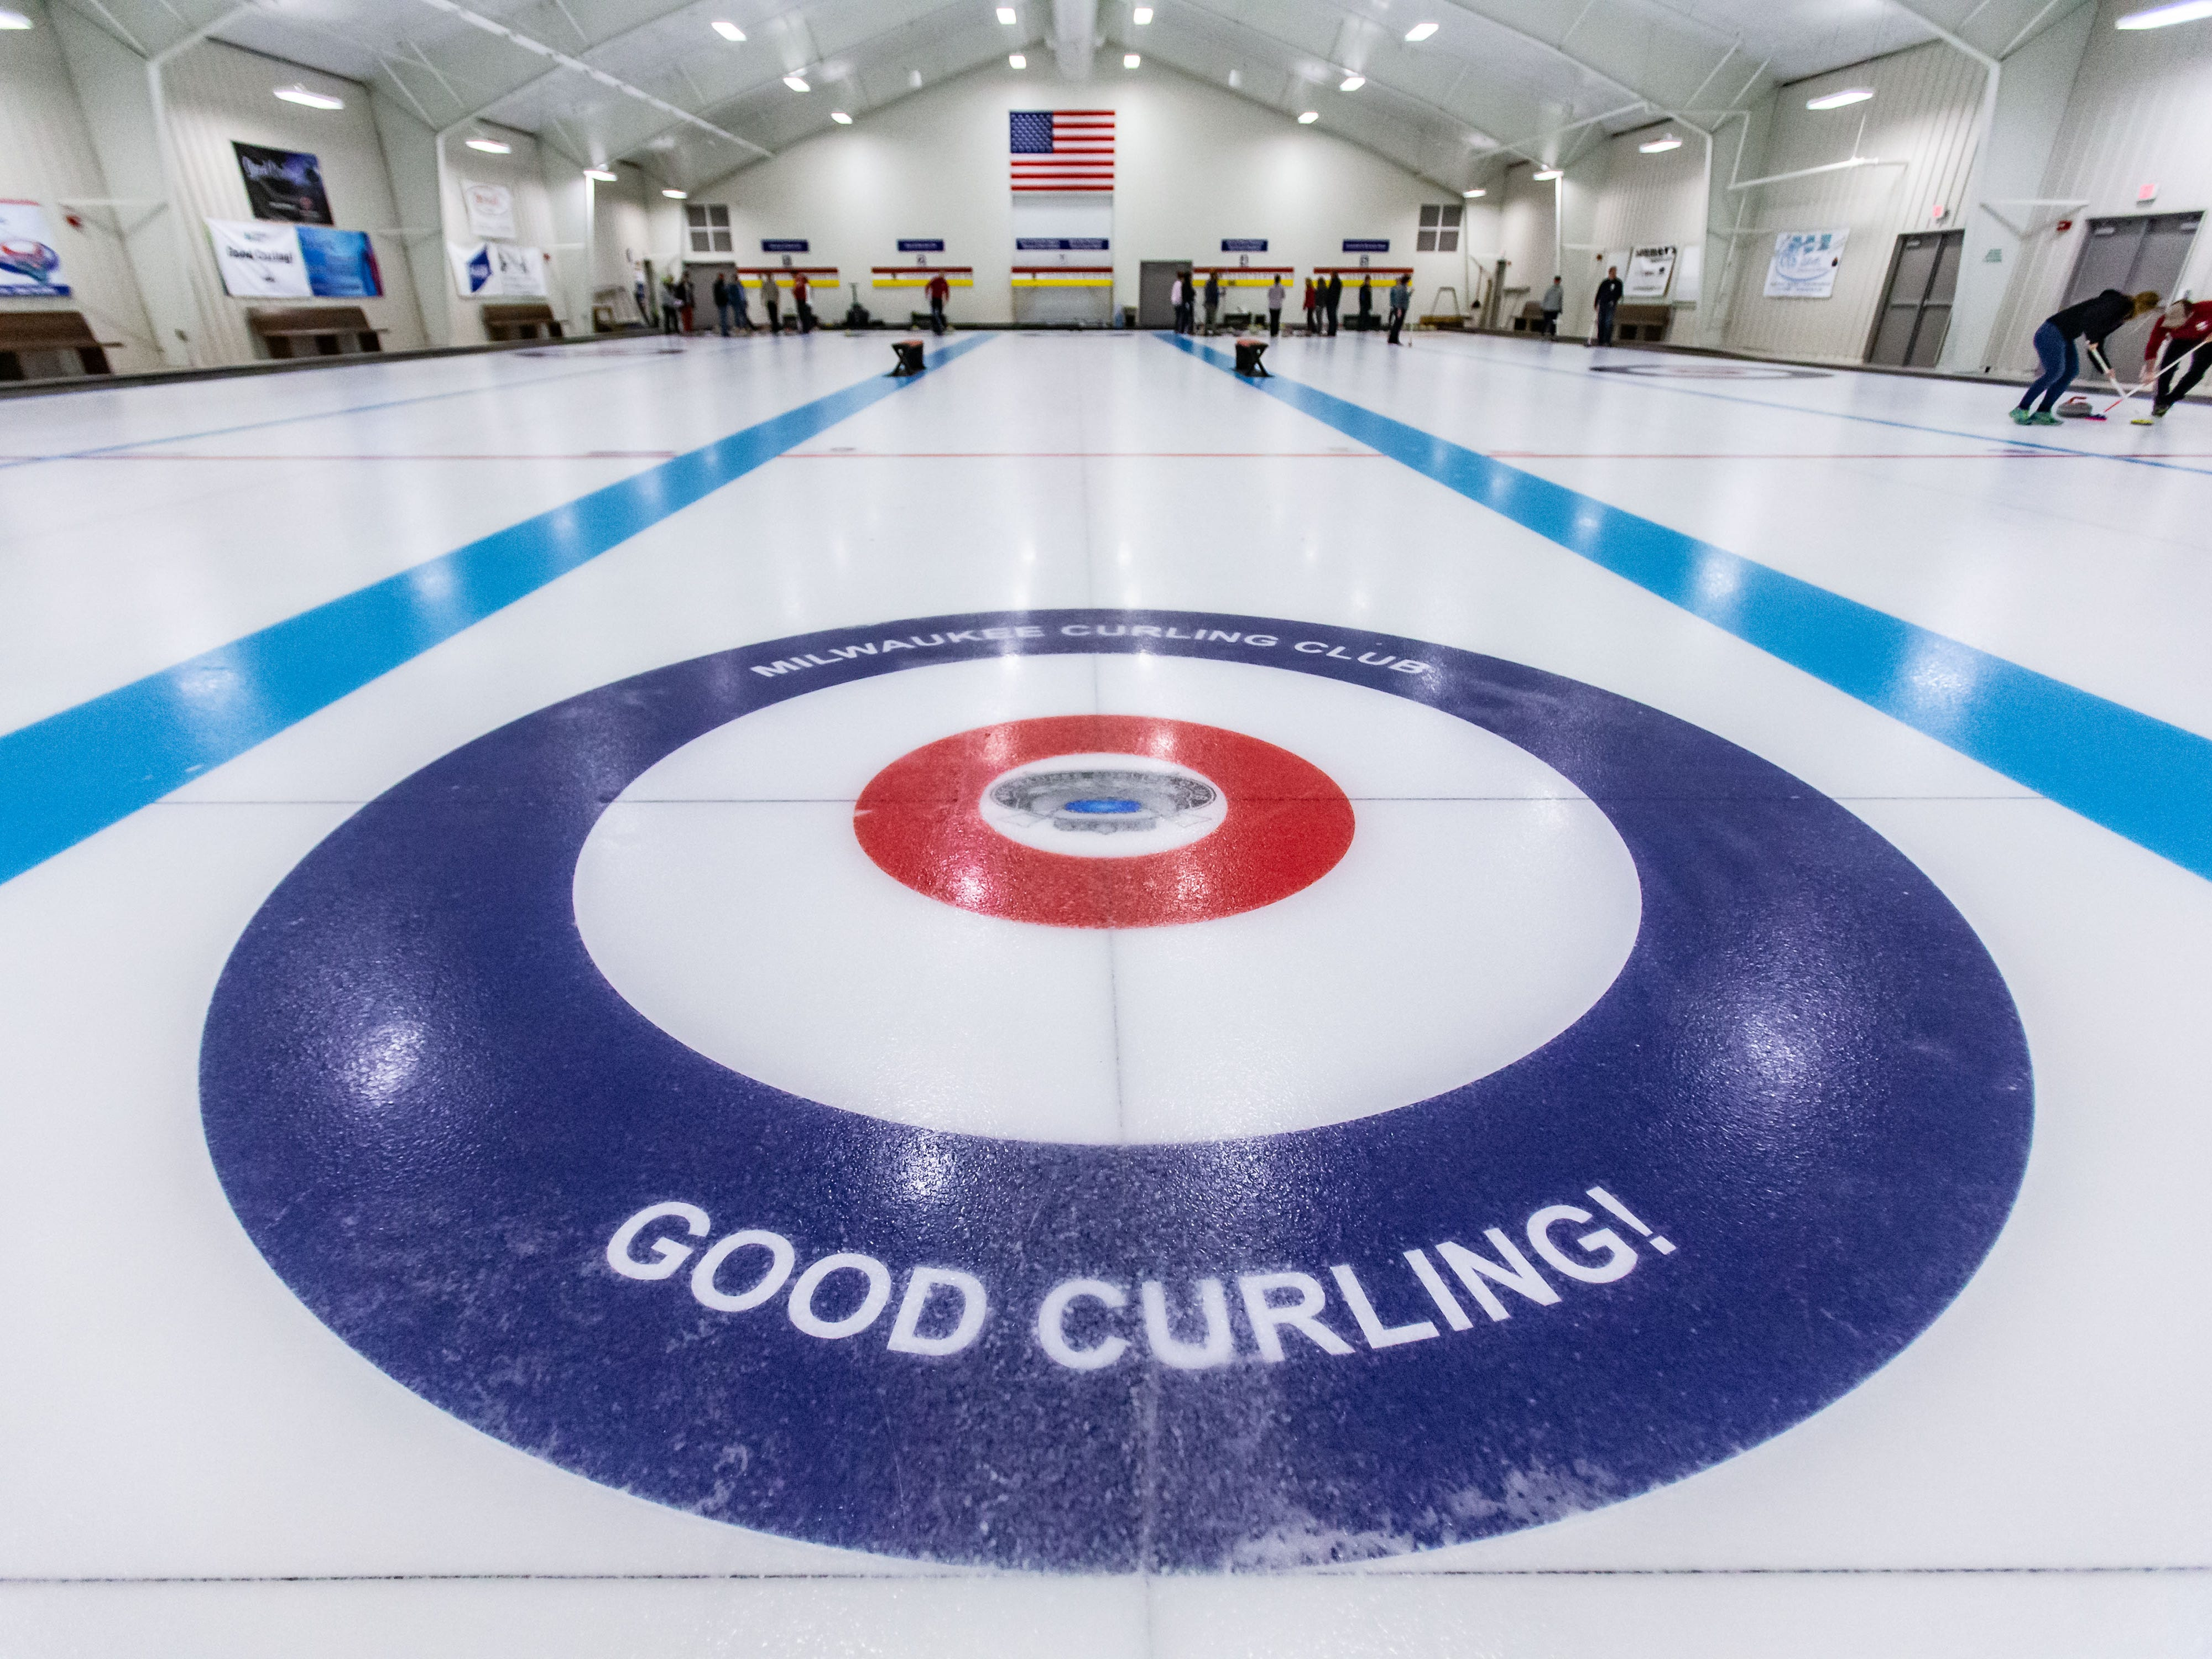 Participants practice the sport of curling during the Learn to Curl program at the Milwaukee Curling Club in Cedarburg on Saturday, Dec. 29, 2018. The Milwaukee Curling Club was founded in 1845 and is the longest continually operating curling club in the United States.